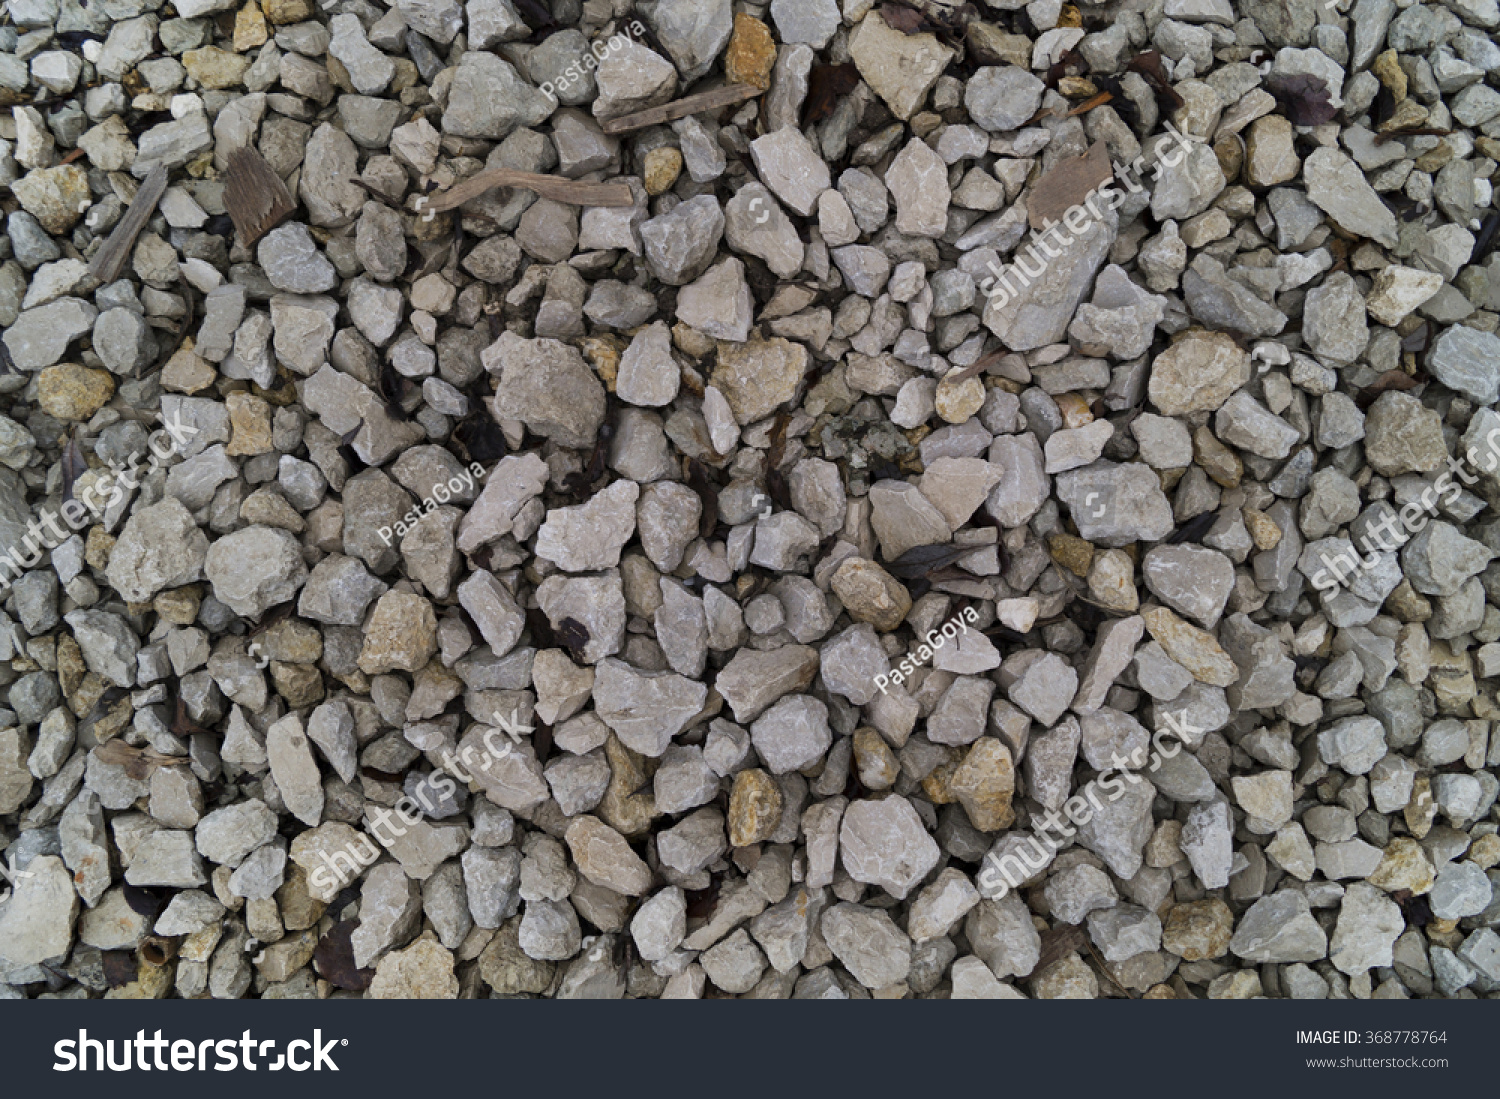 Many types of gravel pebbles for texture background